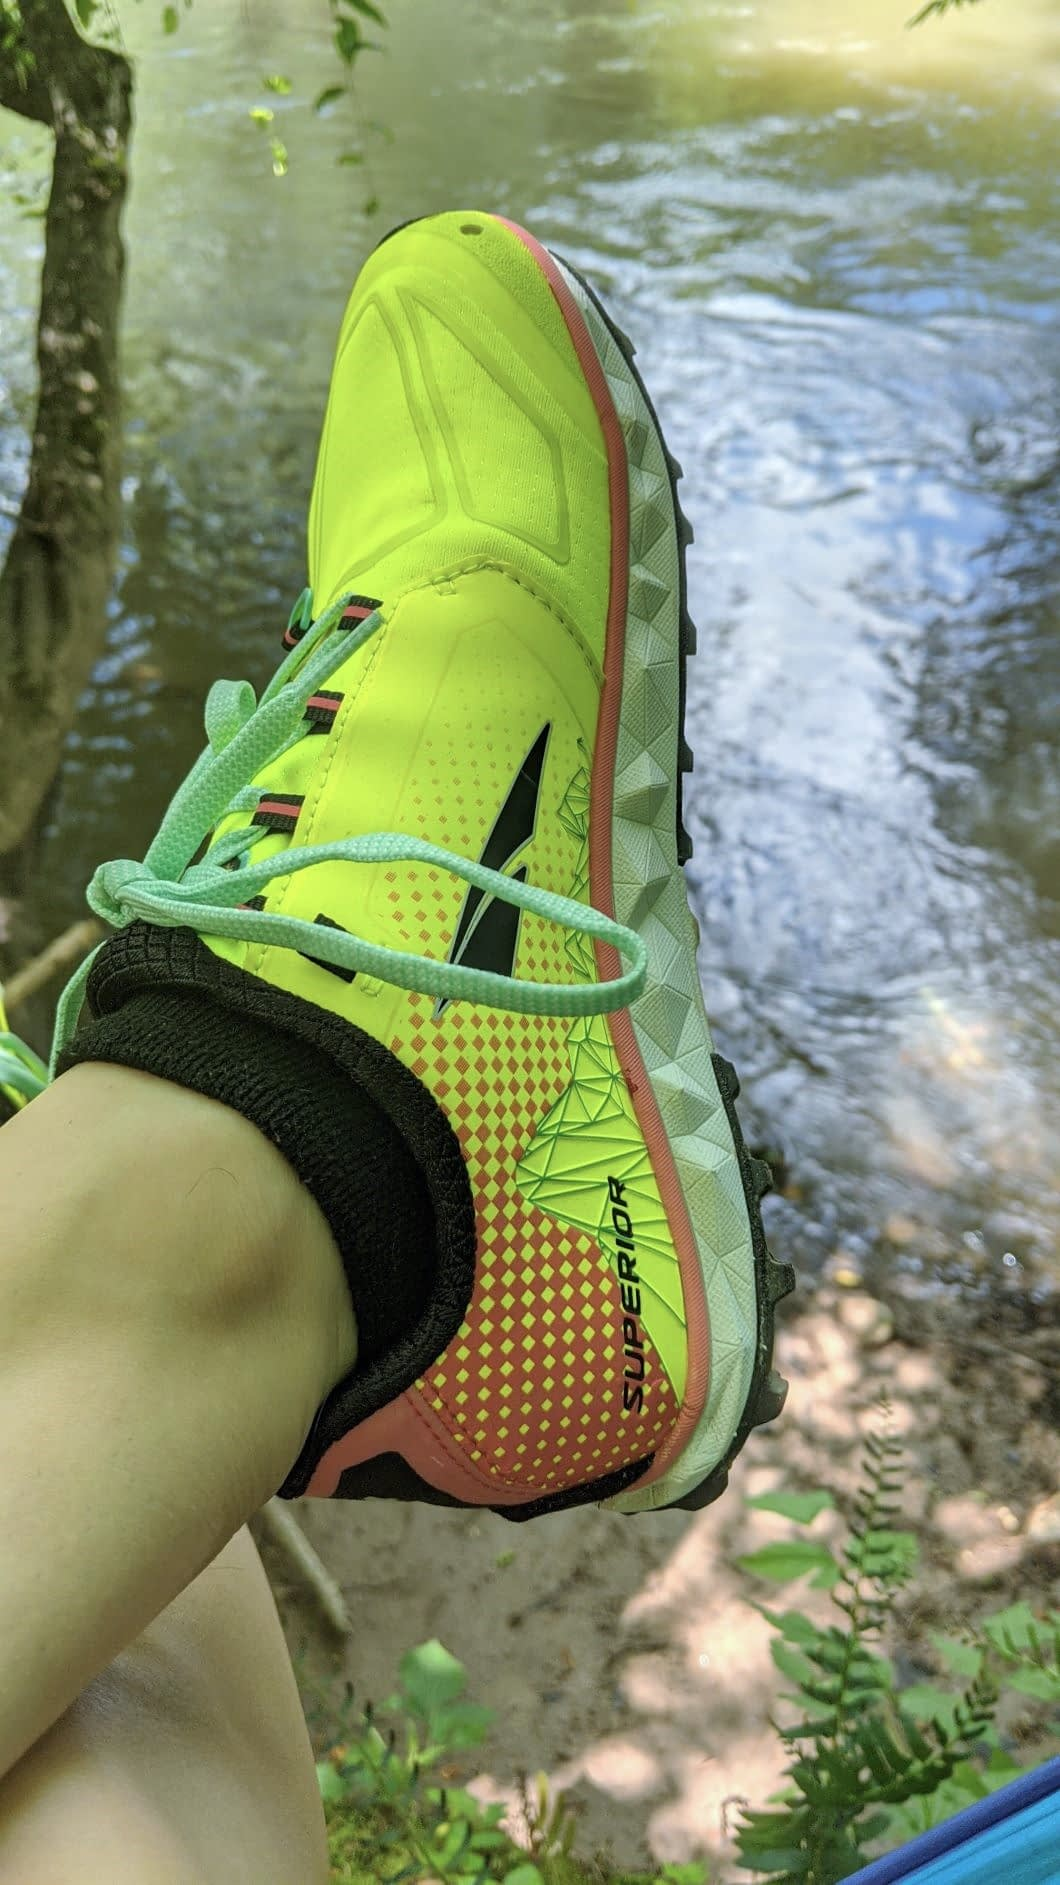 i like my altra shoes for hiking i never get hiking blisters